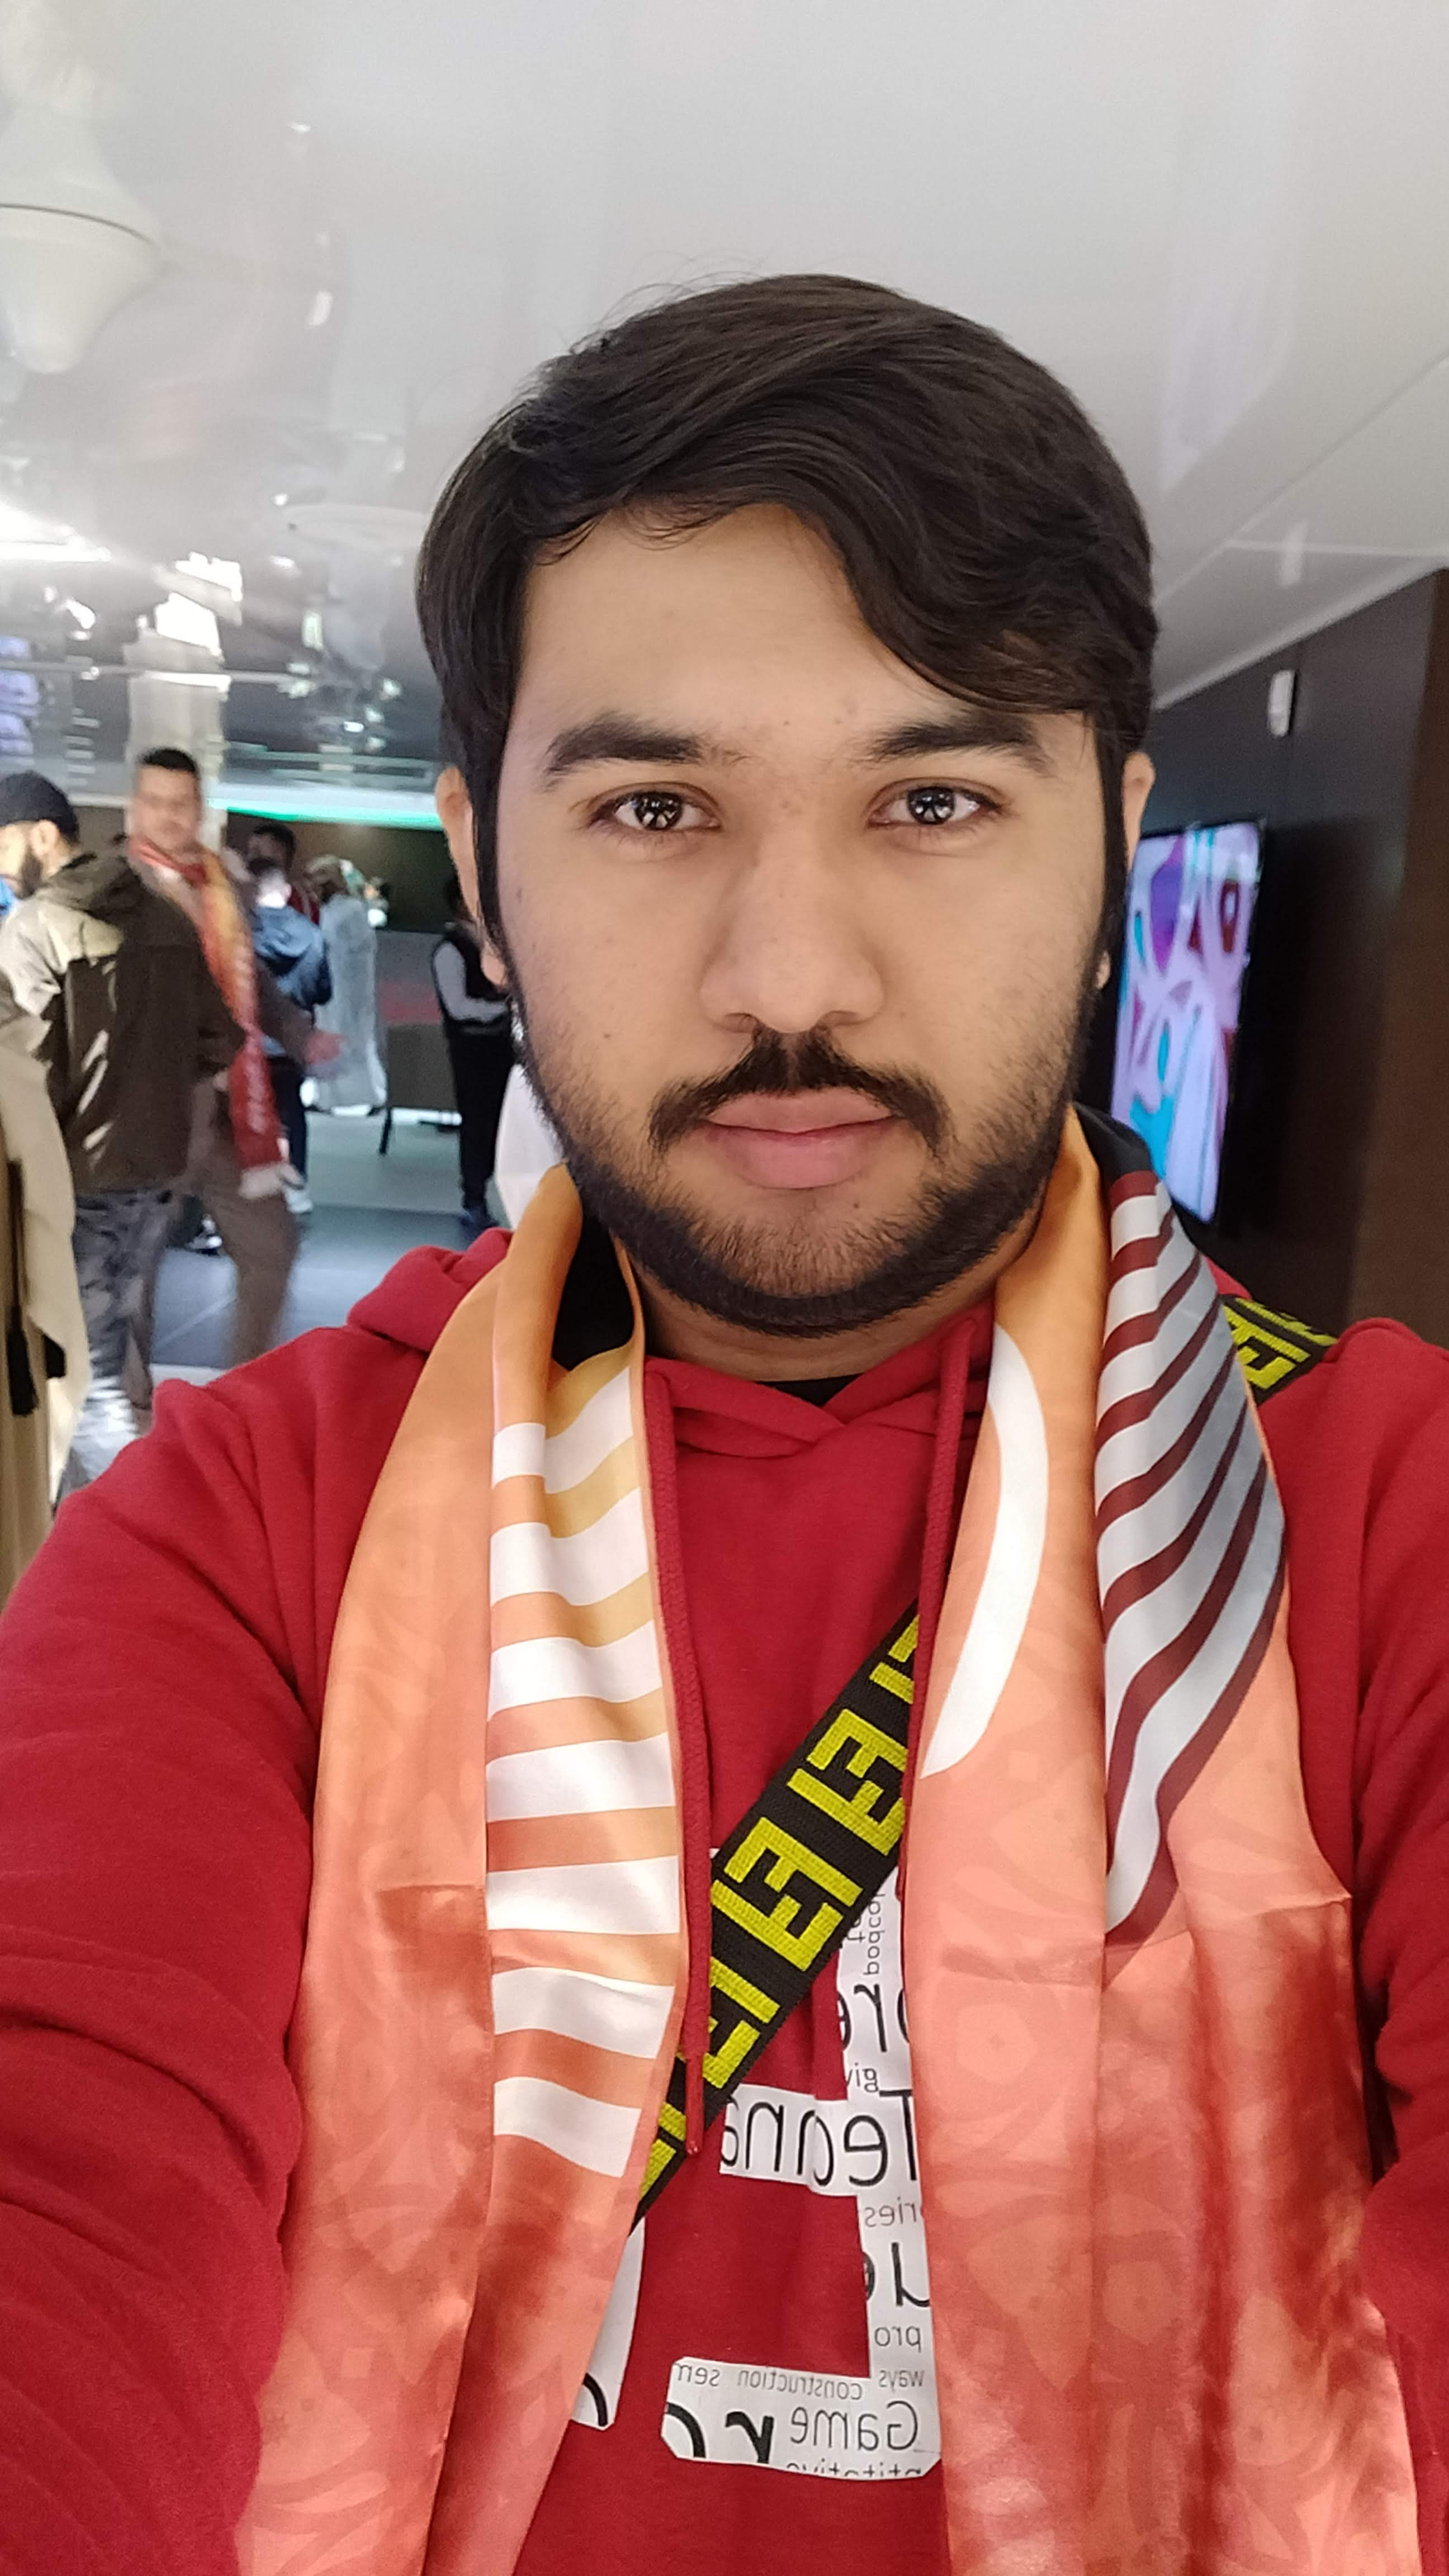 content/site/blog/2020-01-01-software-developers-2019-review-and-new-year-resolution/afzaal-ahmad-zeeshan-at-fifa-clubs-world-cup-2019.jpg